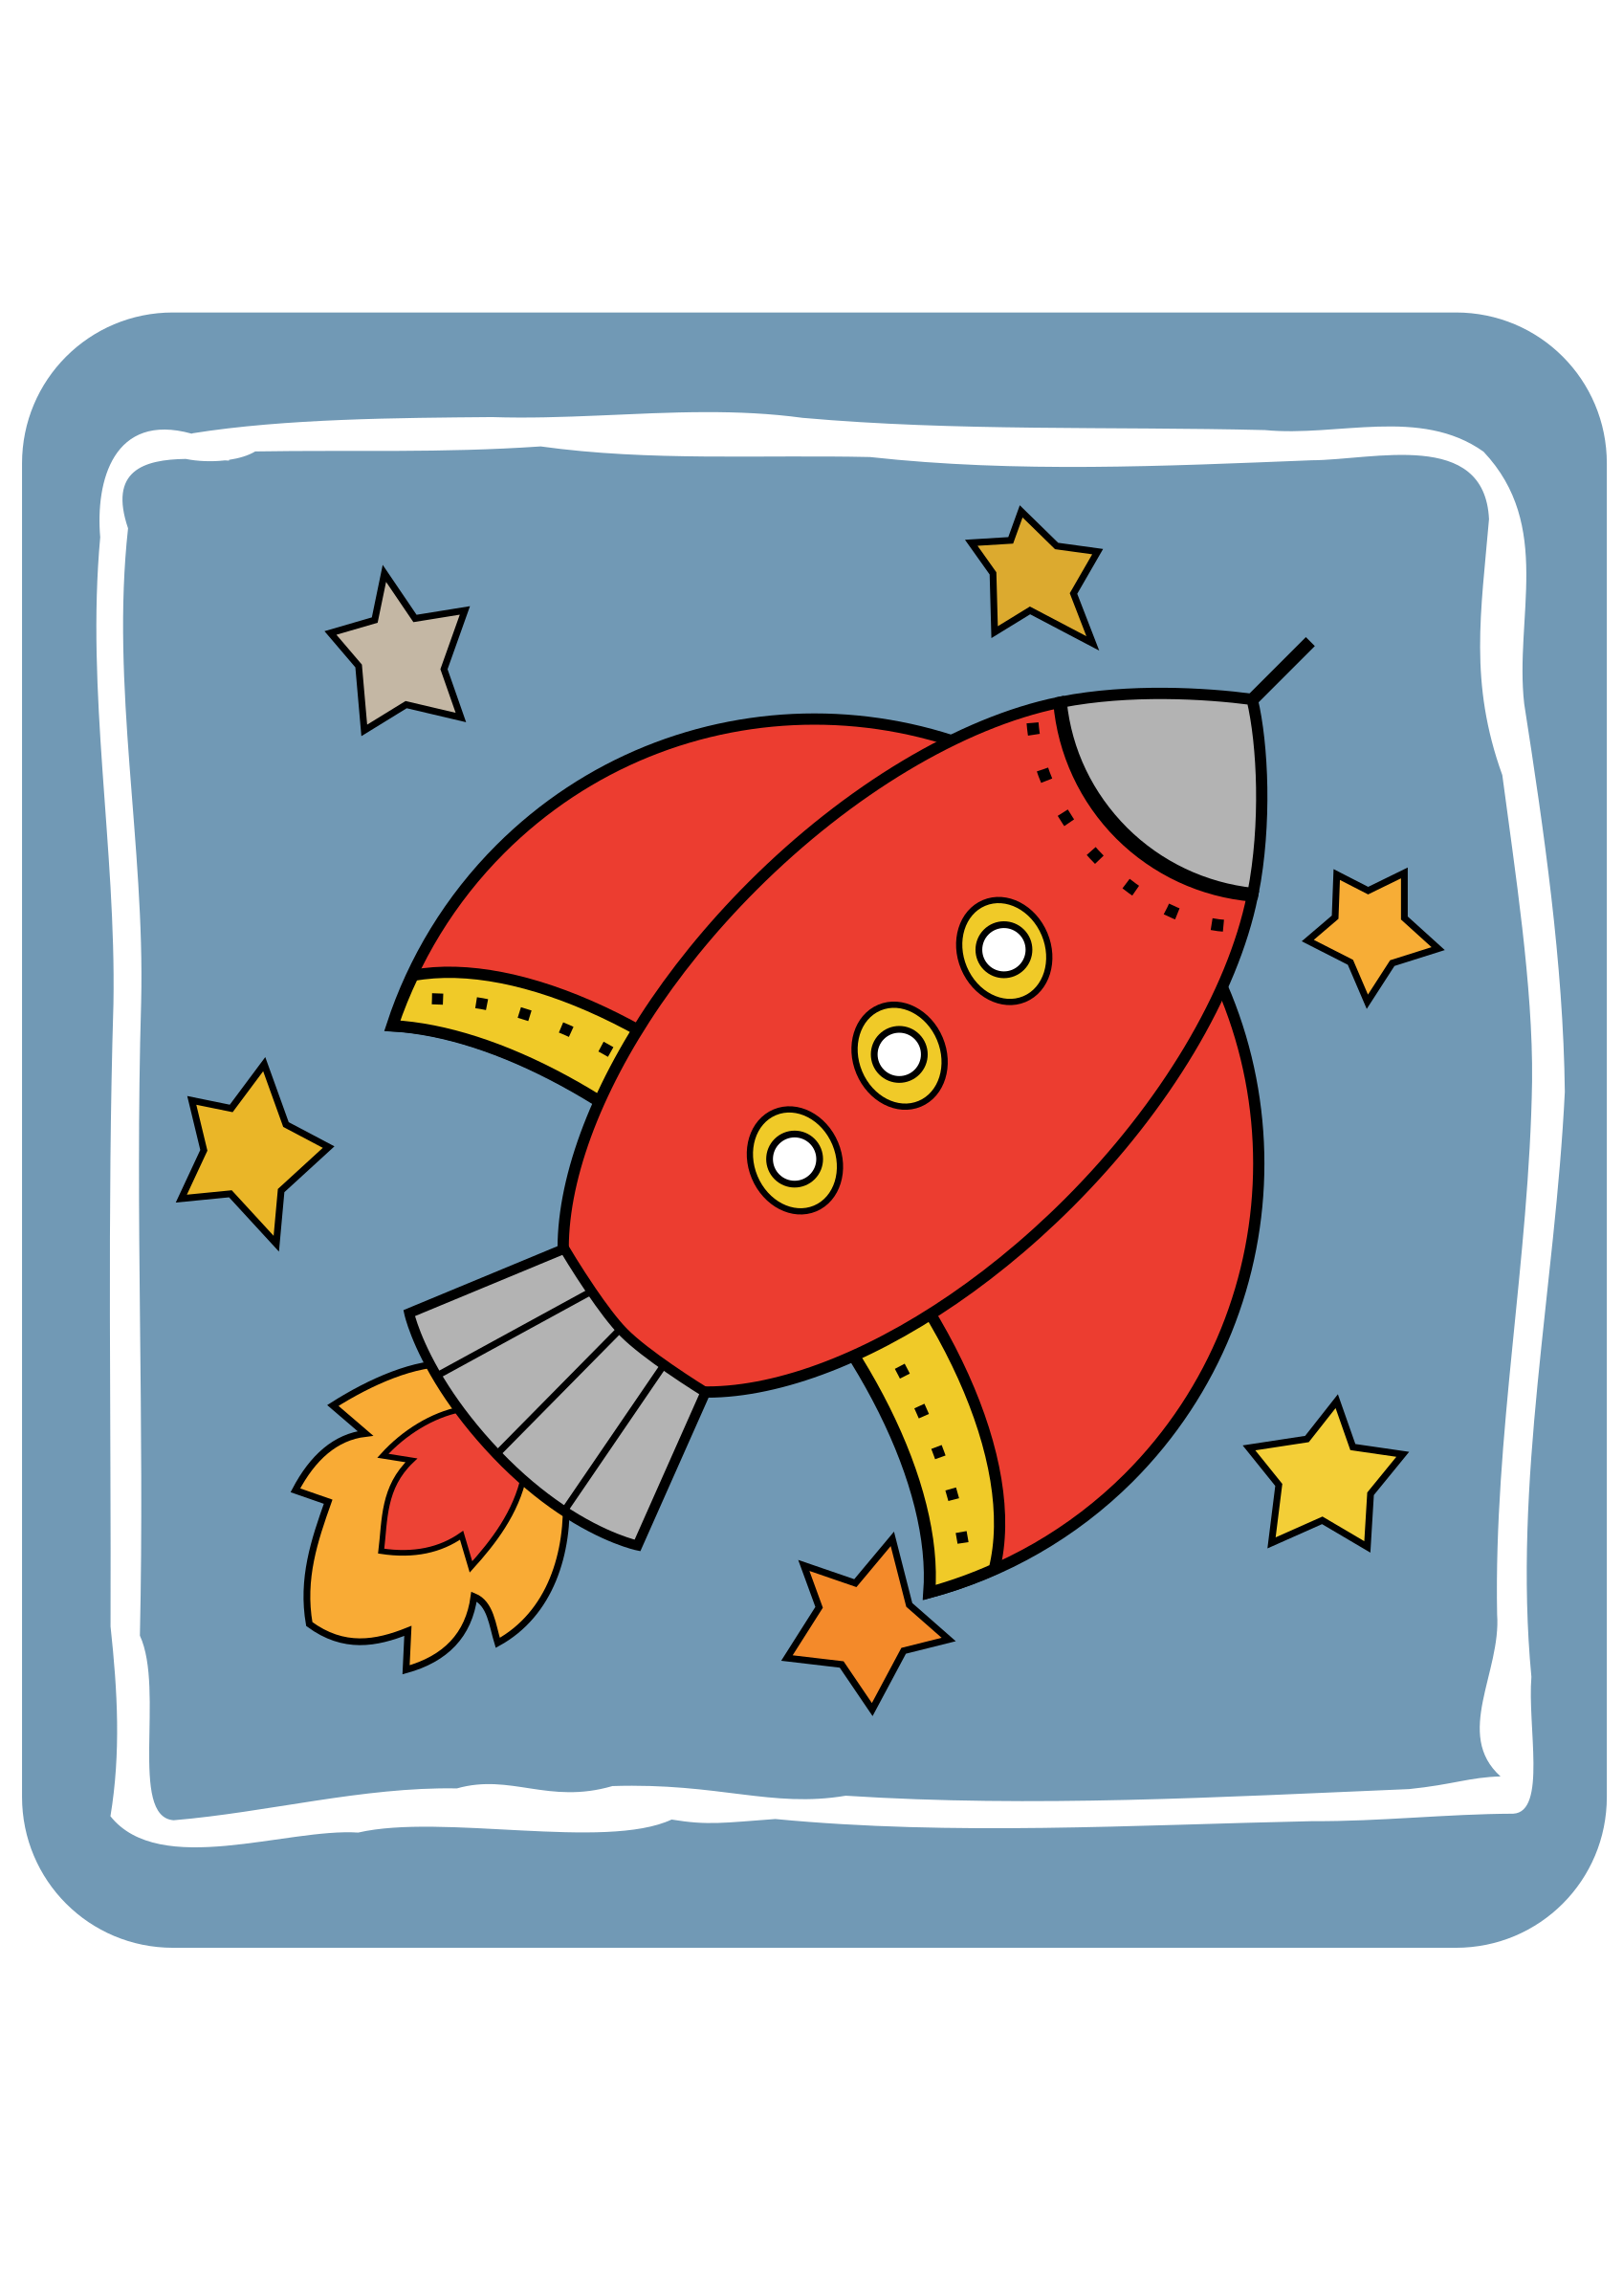 Icon Rocket 1 by ejmillan